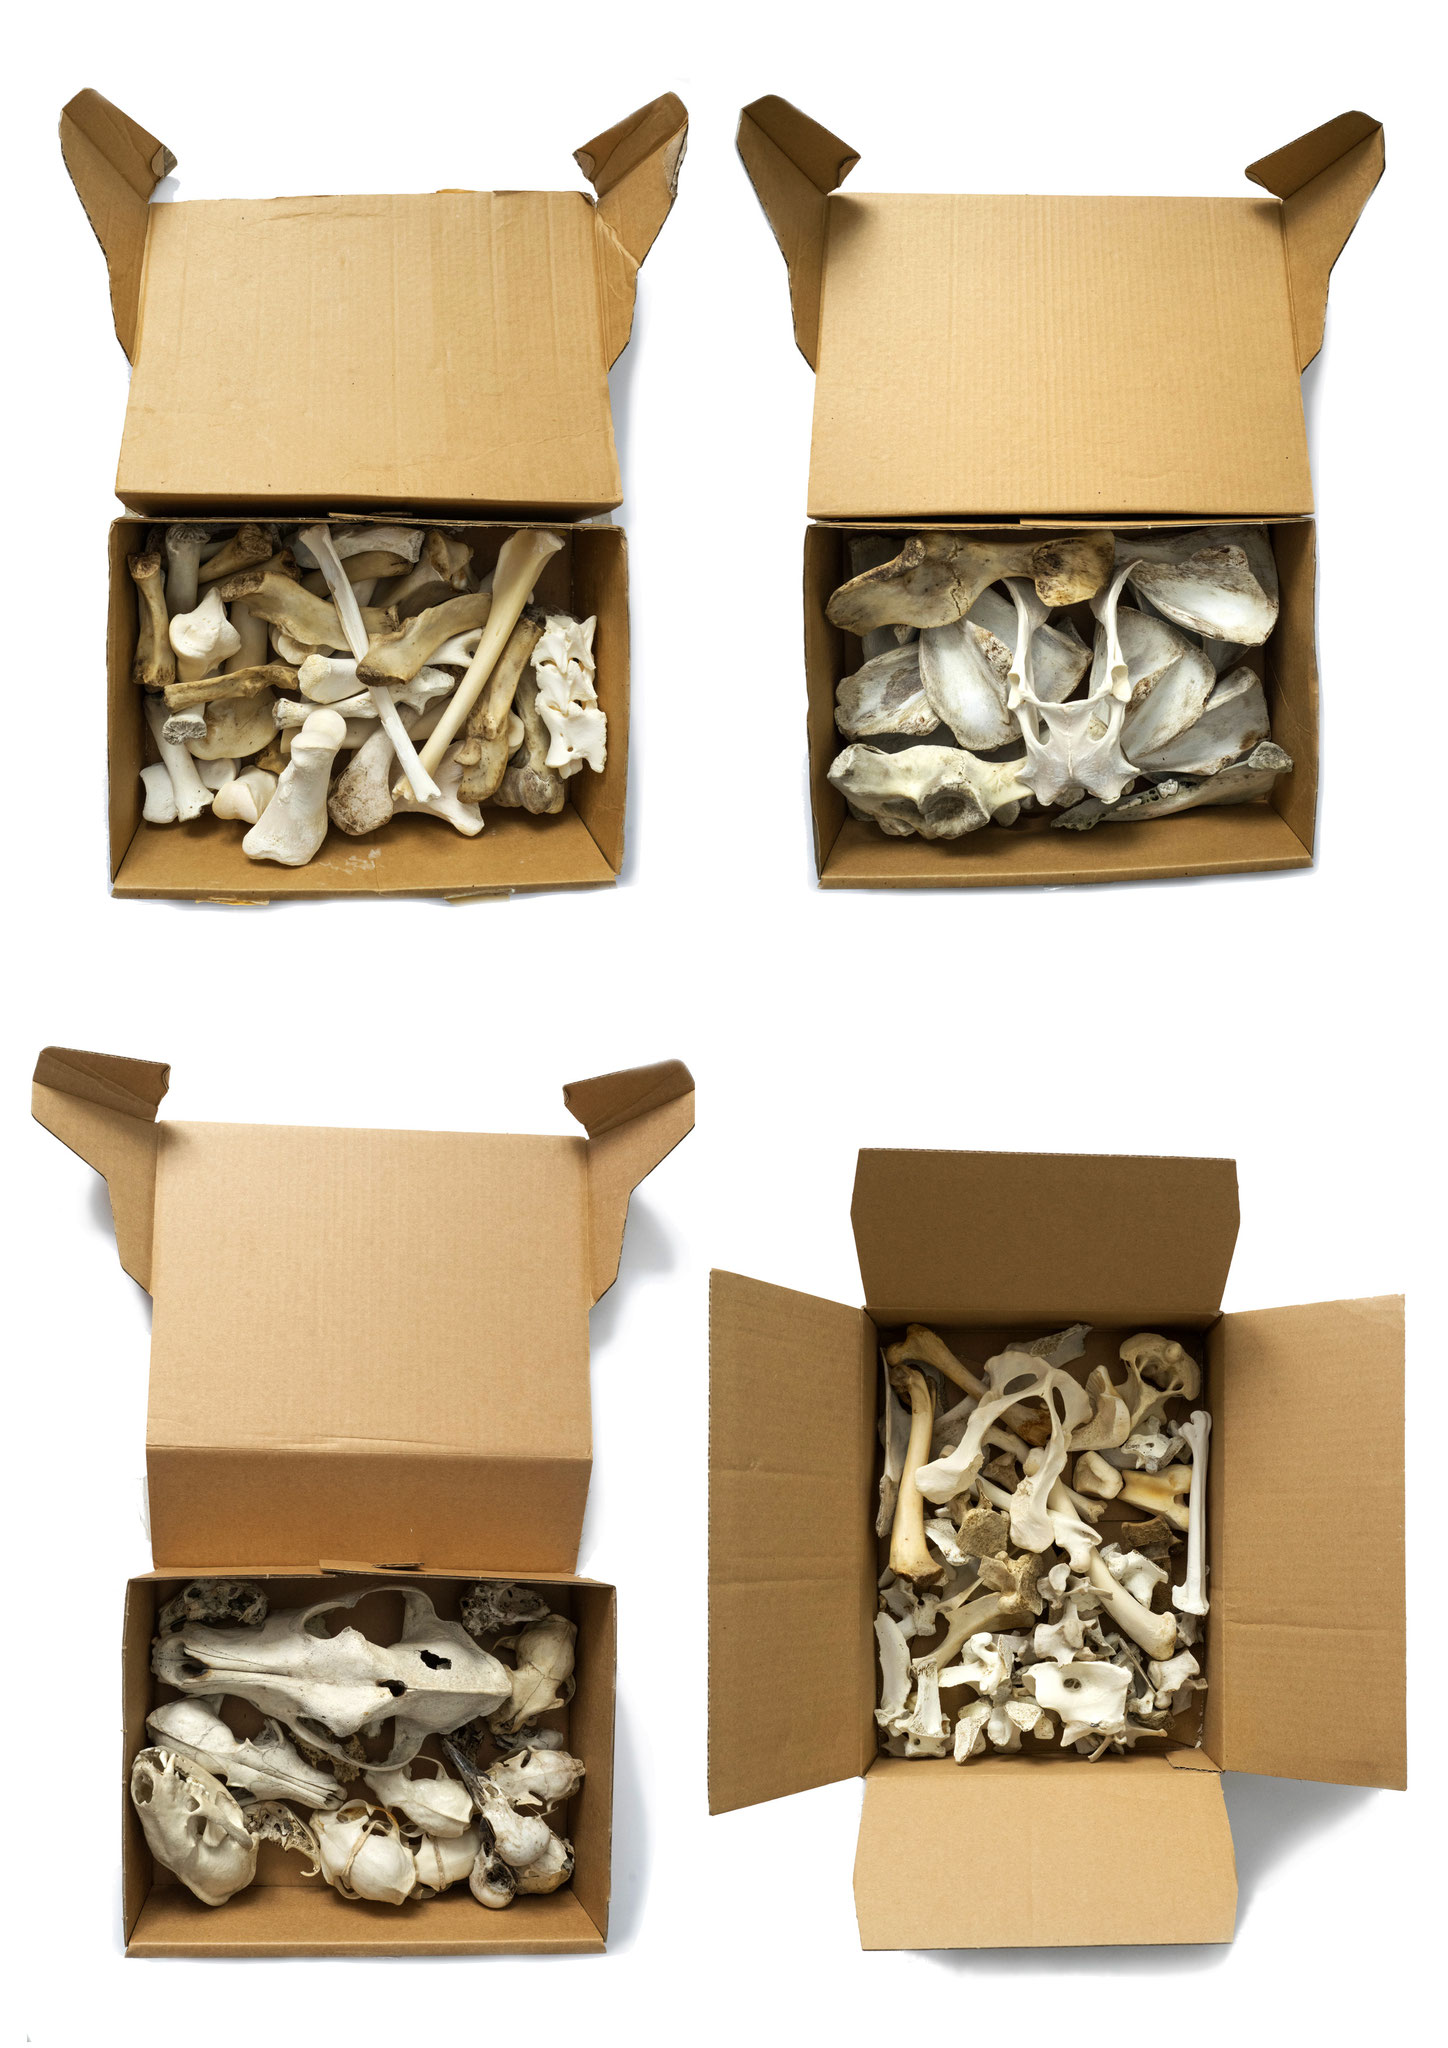 4 Boxes, 2015, cardboard boxes filled with bones, each ca. 25x60x15cm